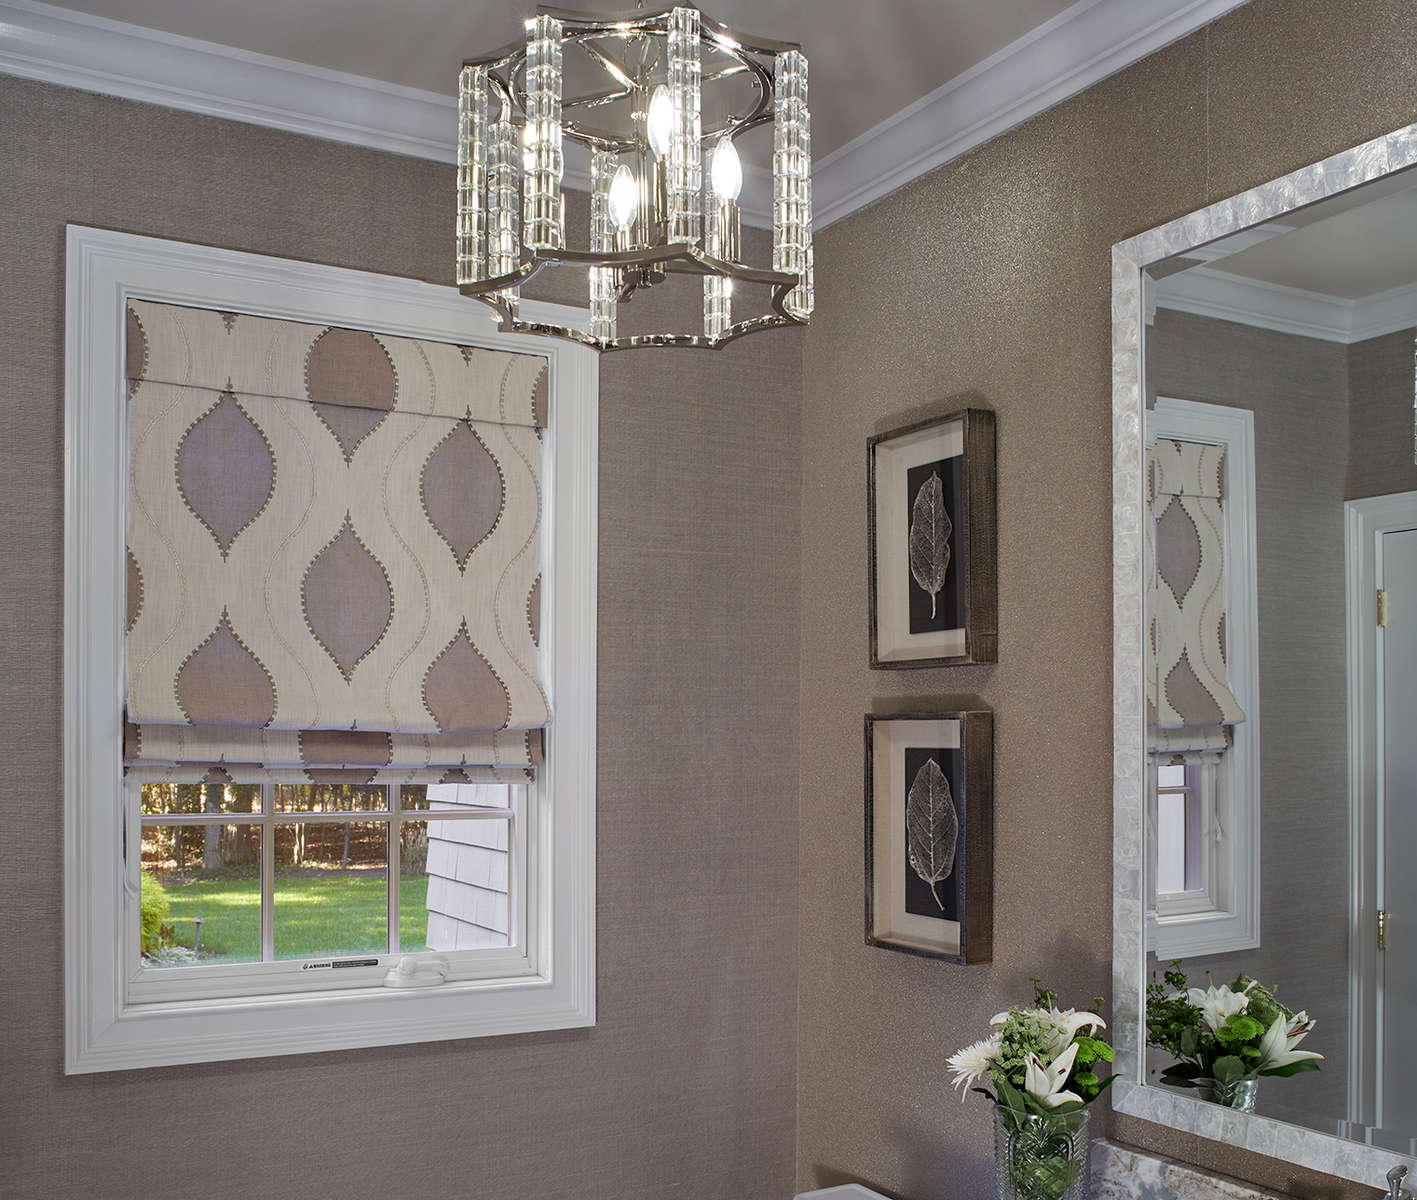 Belle Terre powder room renovation with glass bead wallcovering and custom roman shade